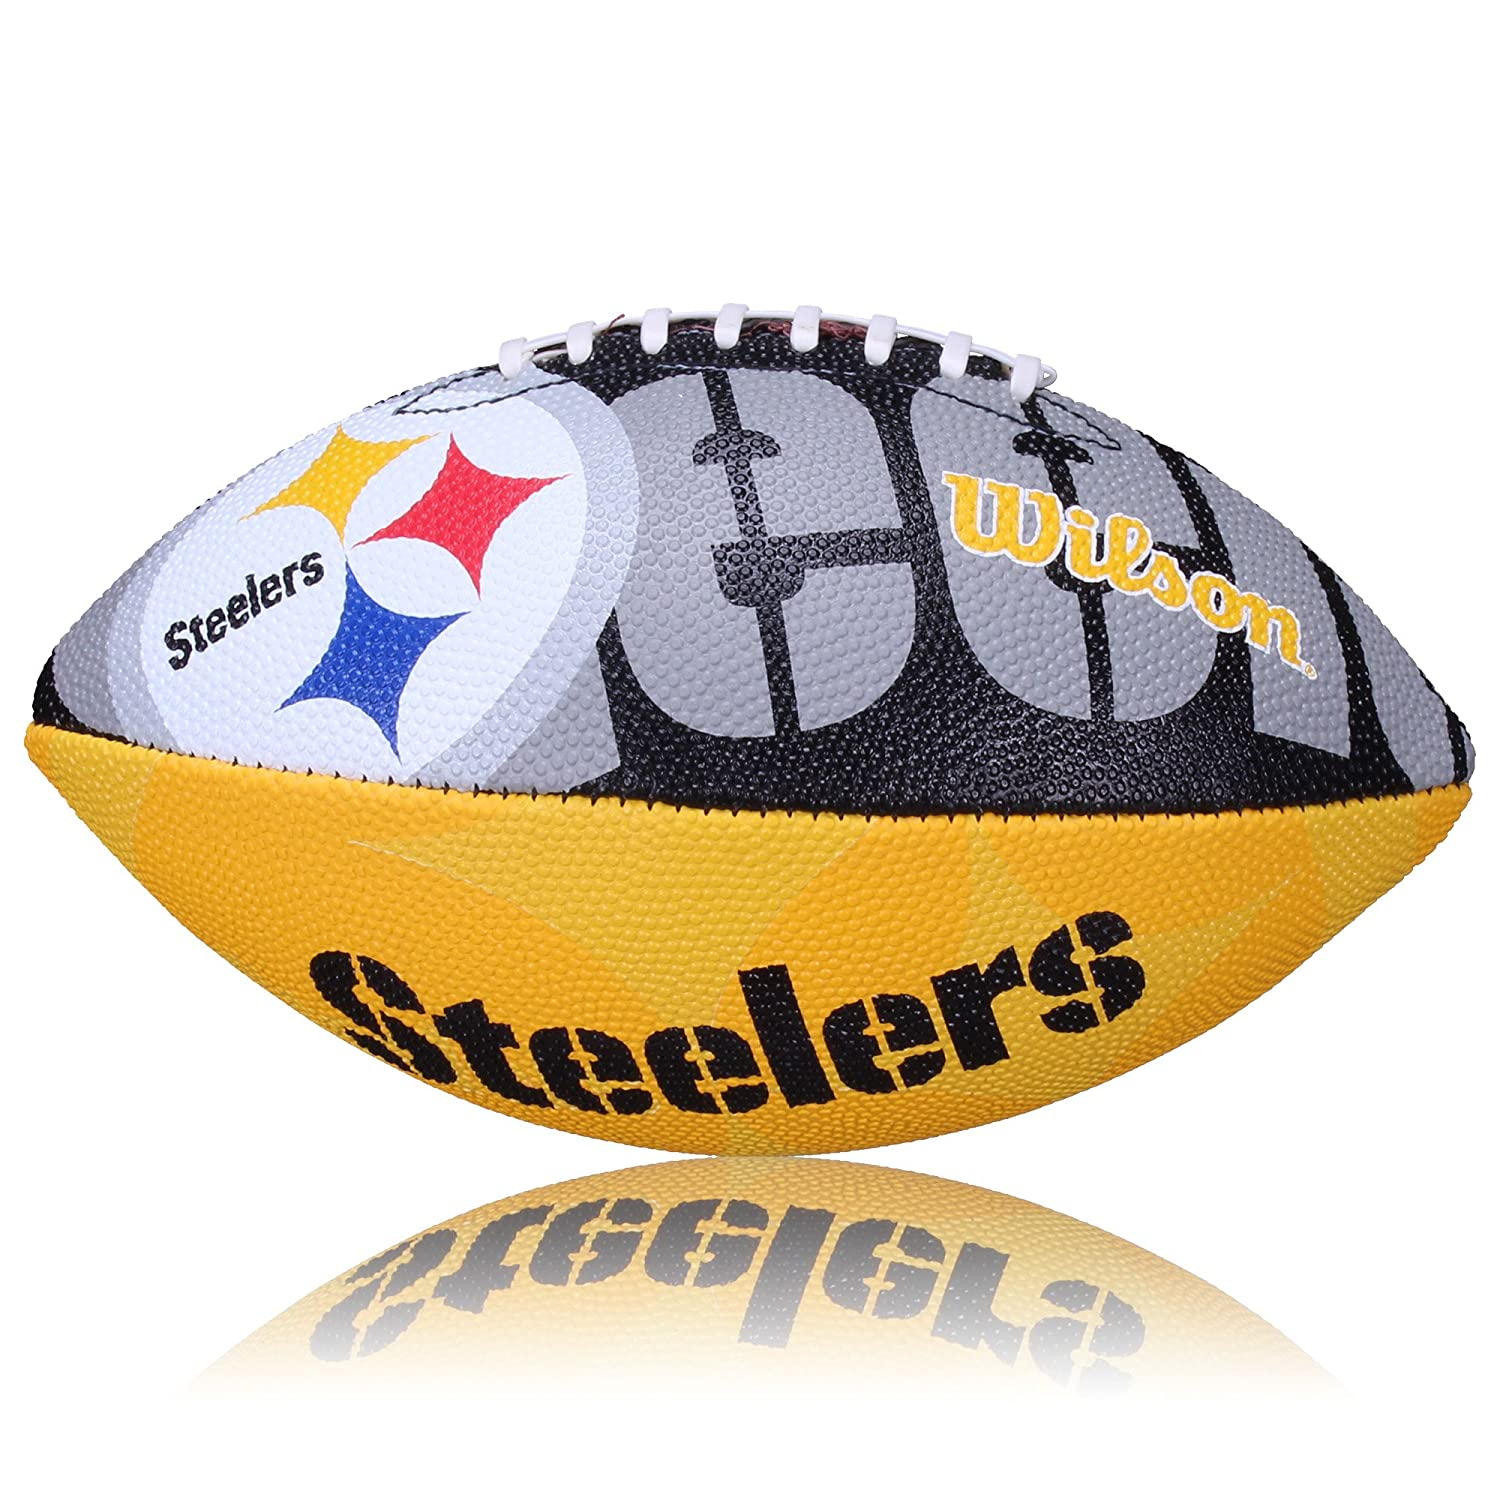 Wilson Football NFL Junior Steelers Logo Junior - Balón de fútbol americano (infantil, caucho), color verde, talla Junior WL0206213640